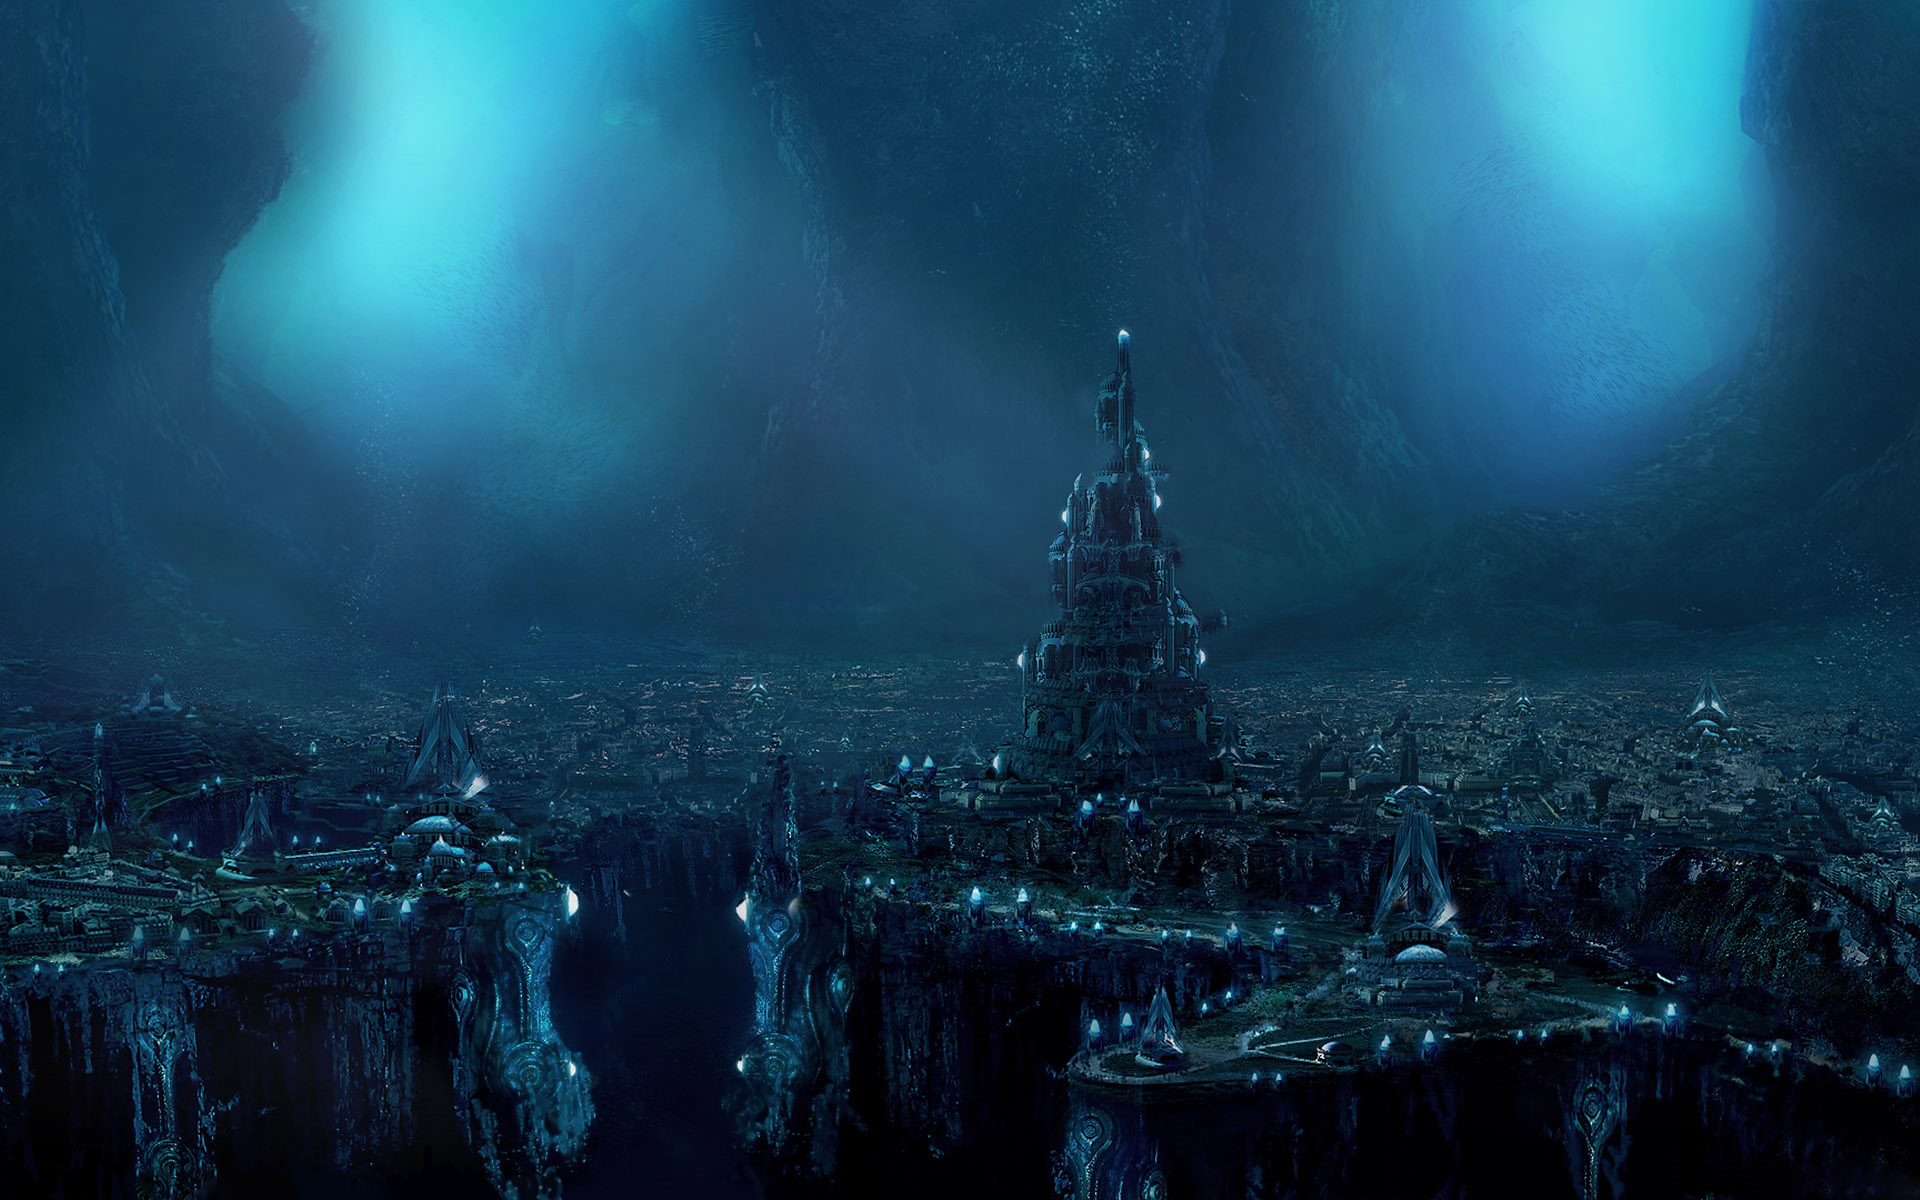 Sci Fi - City  Dark Atlantis Landscape Fantasy Wallpaper